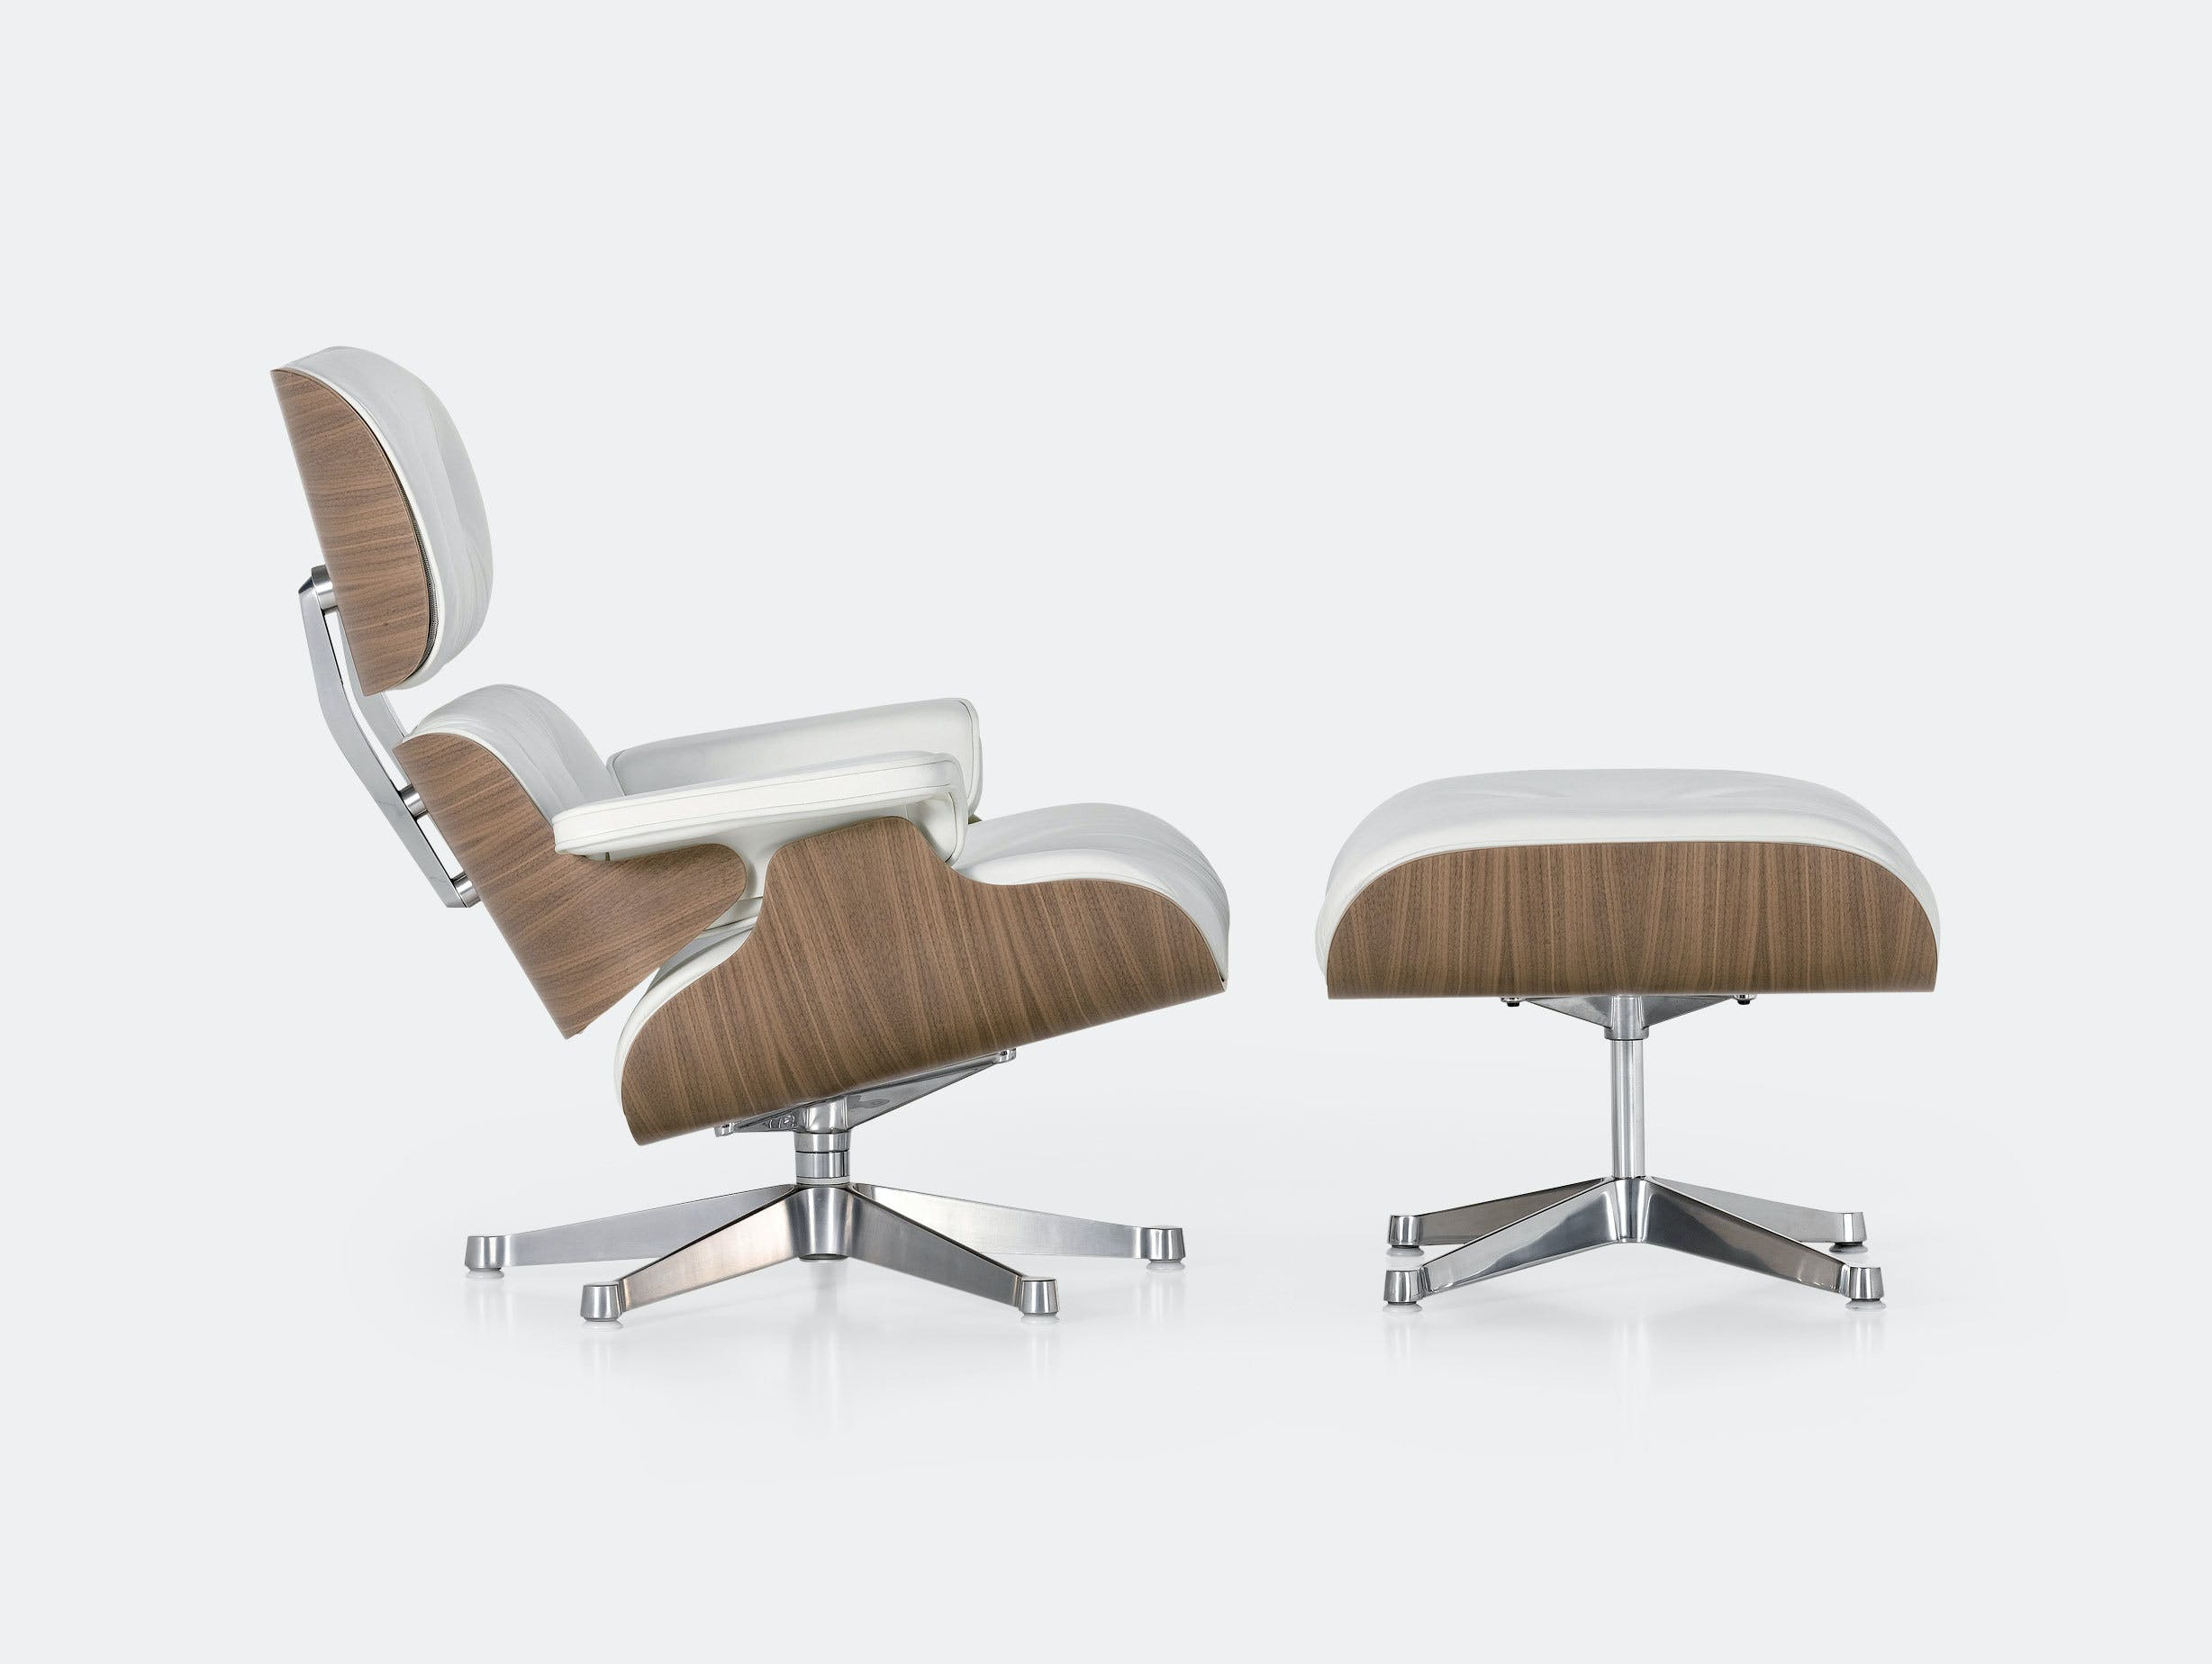 Vitra Eames Lounge Chair Ottoman Walnut White Ash Charles And Ray Eames